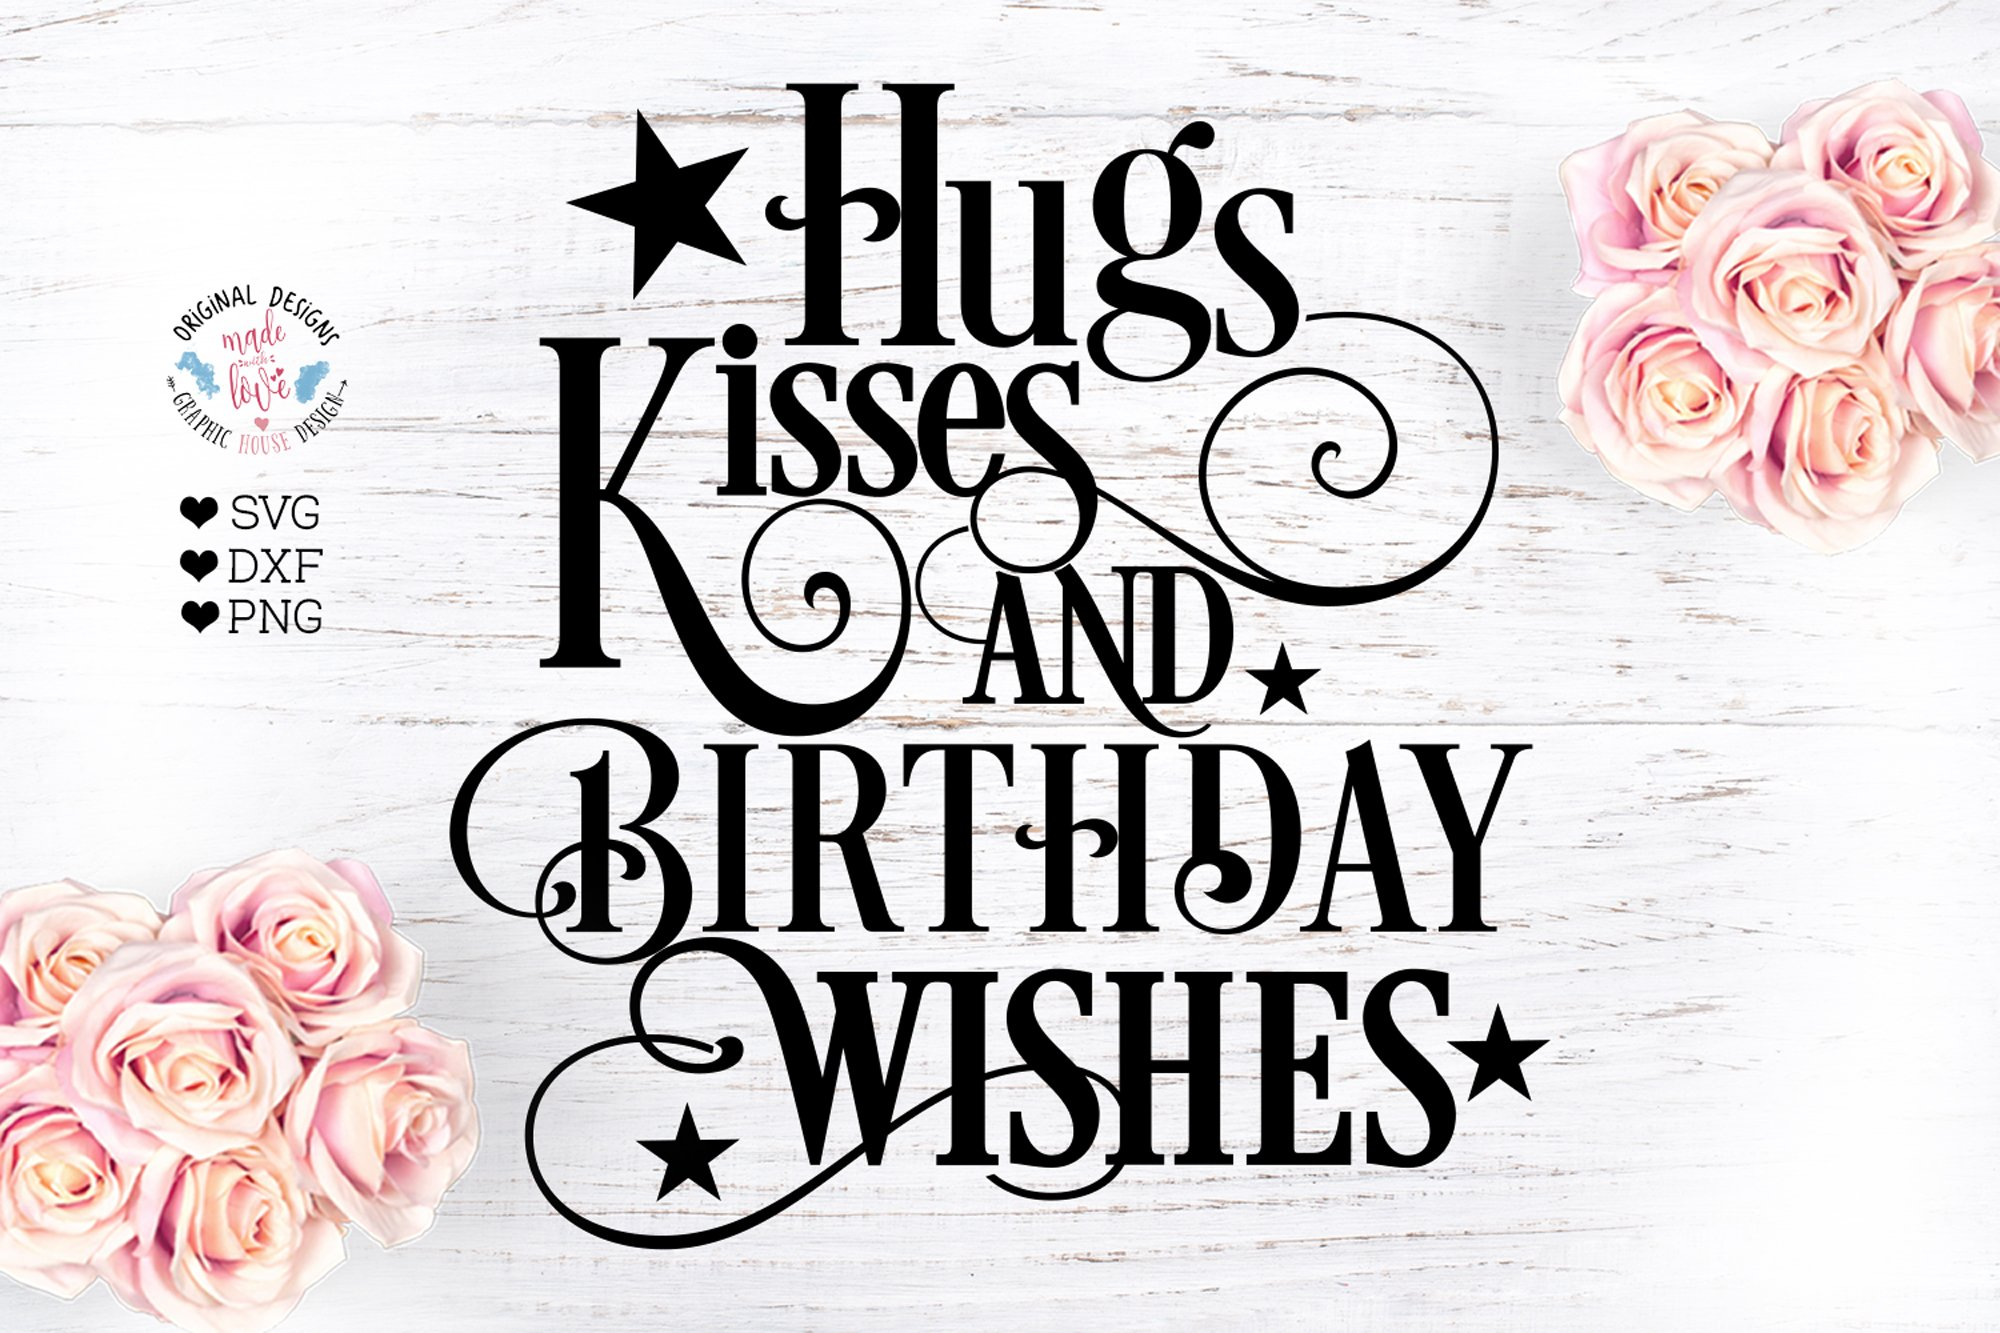 Hugs And Kisses And Birthday Wishes Pre Designed Photoshop Graphics Creative Market